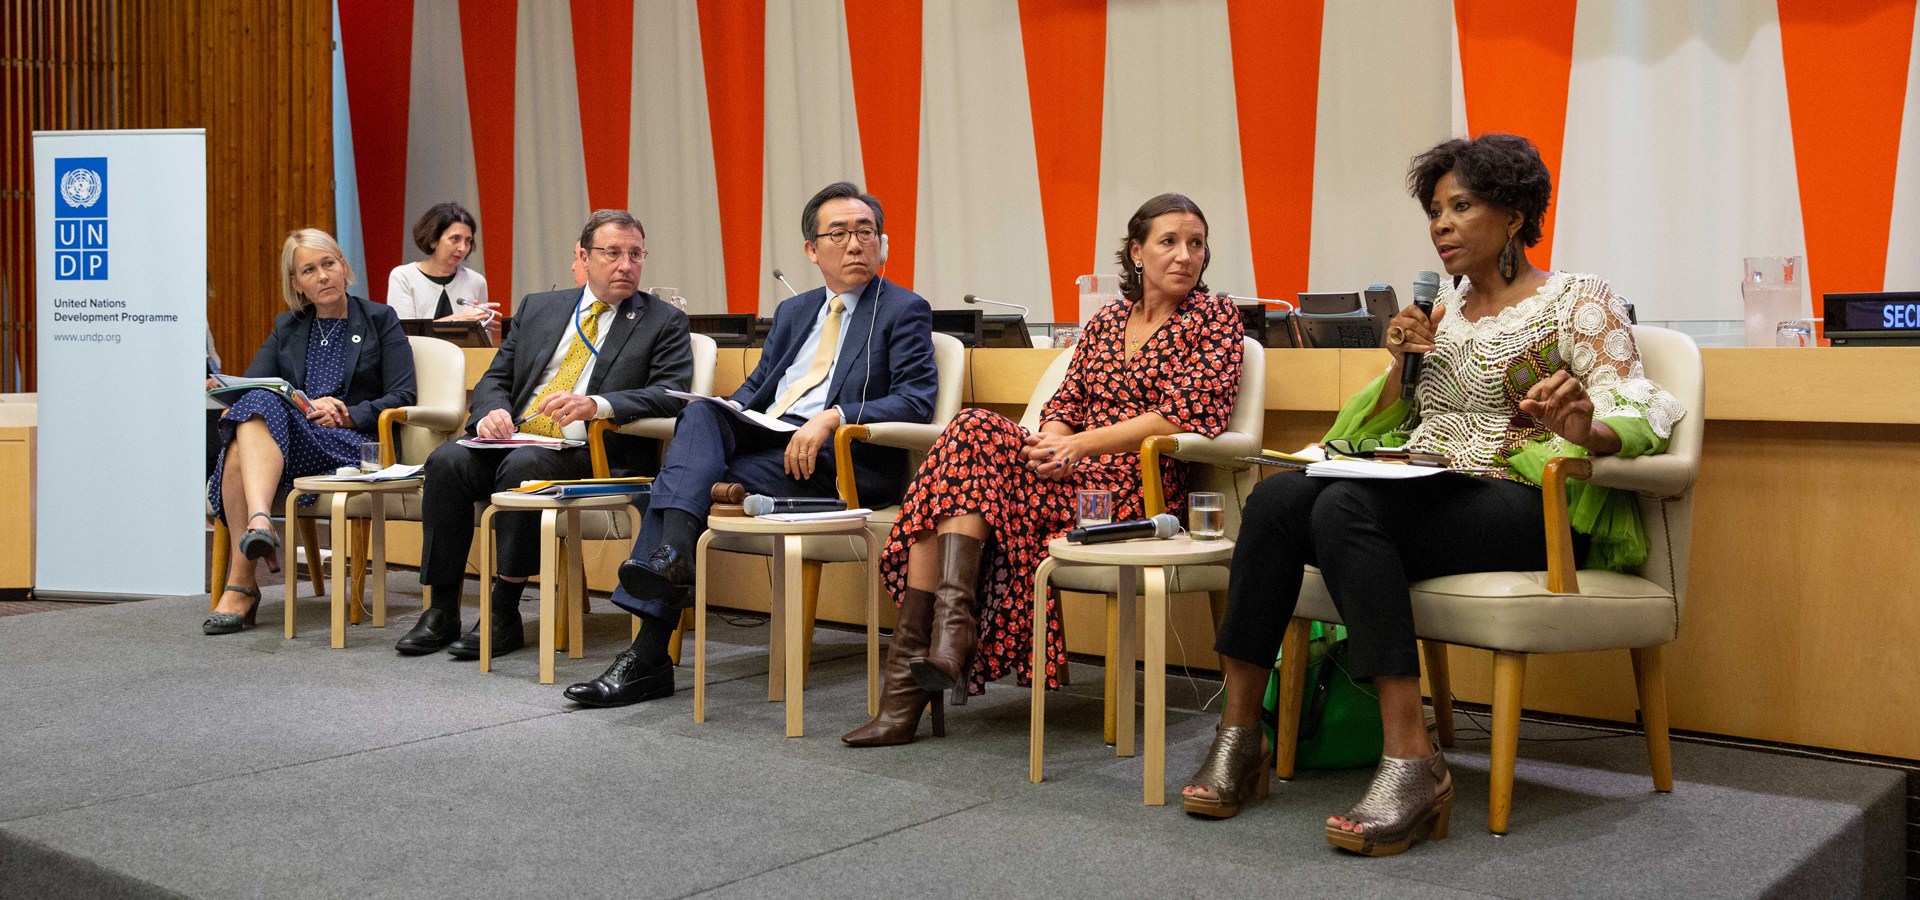 SDG Impact launches standards for Private Equity to respond to the SDGs